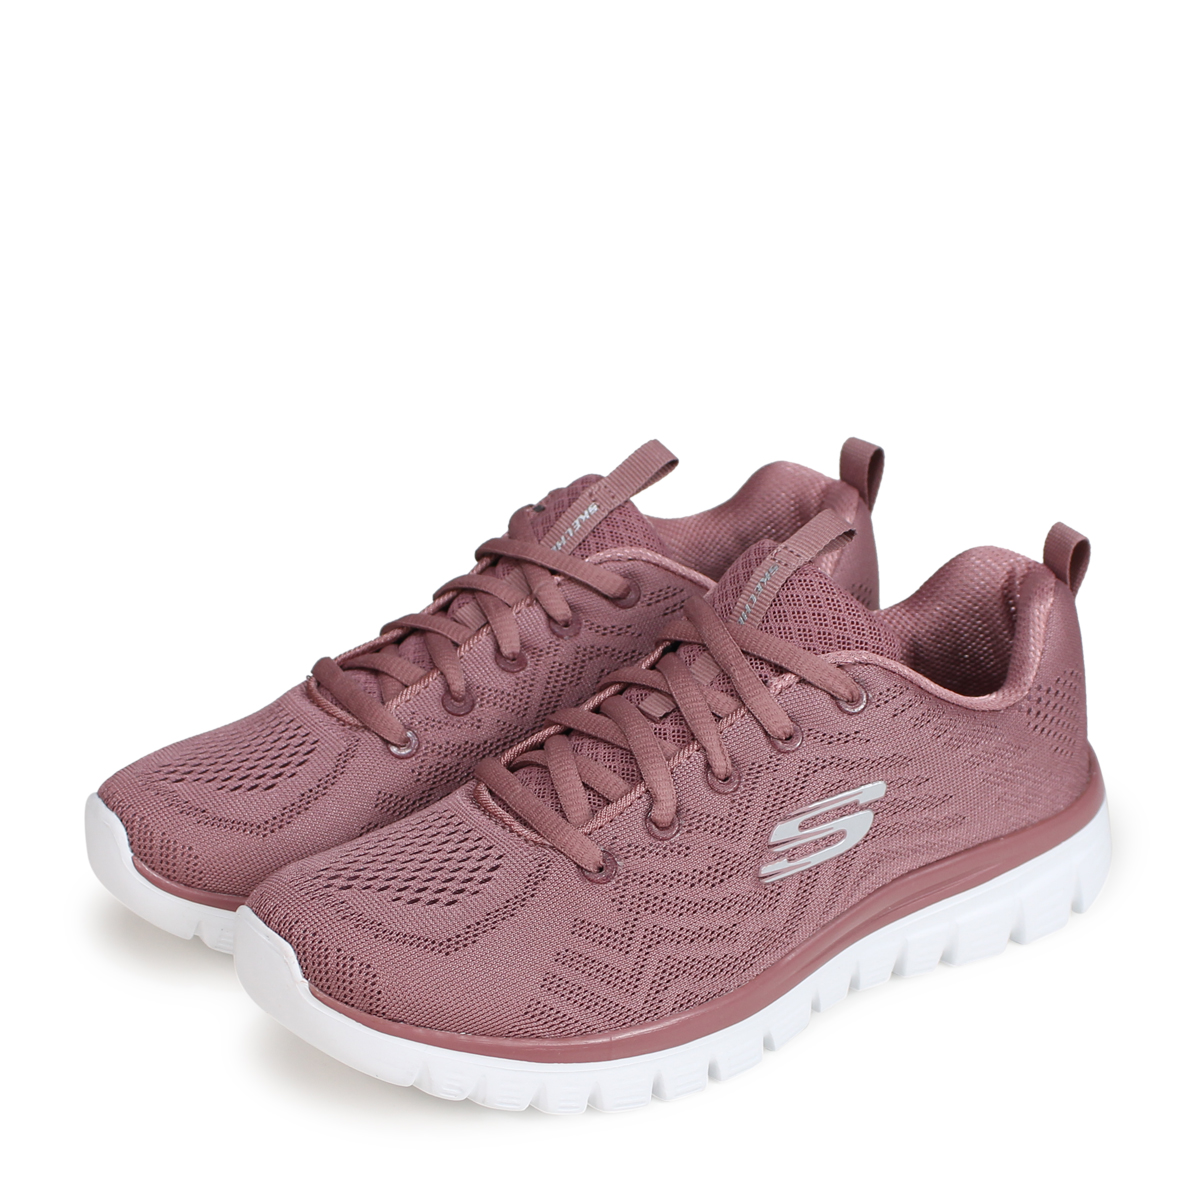 203db803b866 SKECHERS GRACEFUL GET CONNECTED スケッチャーズグレースフルレディーススニーカー 12615 pink  load  planned Shinnyu load in reservation product 9 20 containing  ...